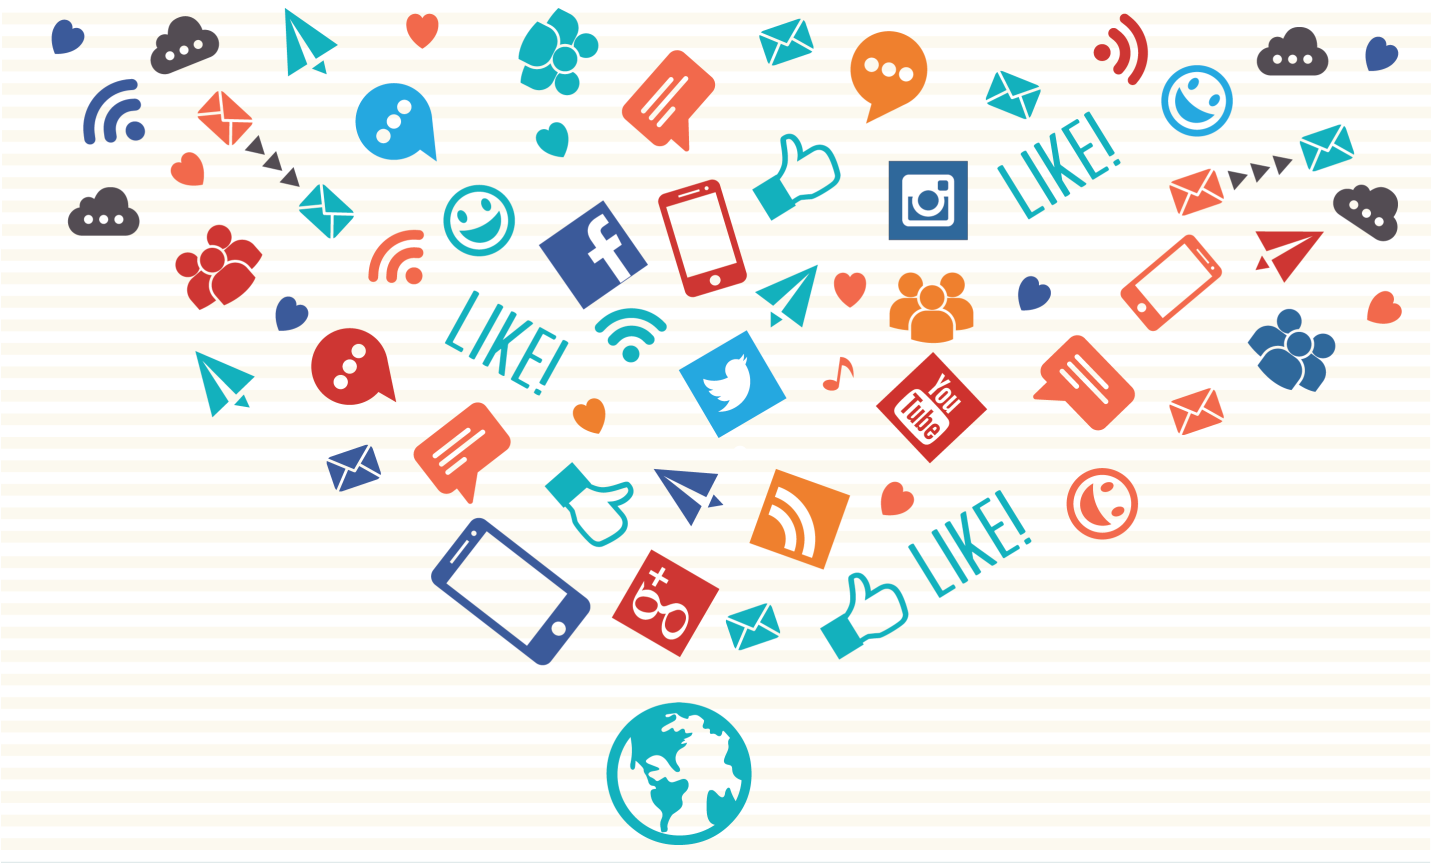 a comparison of pinterest and tumblr to other forms of social media such as facebook or twitter